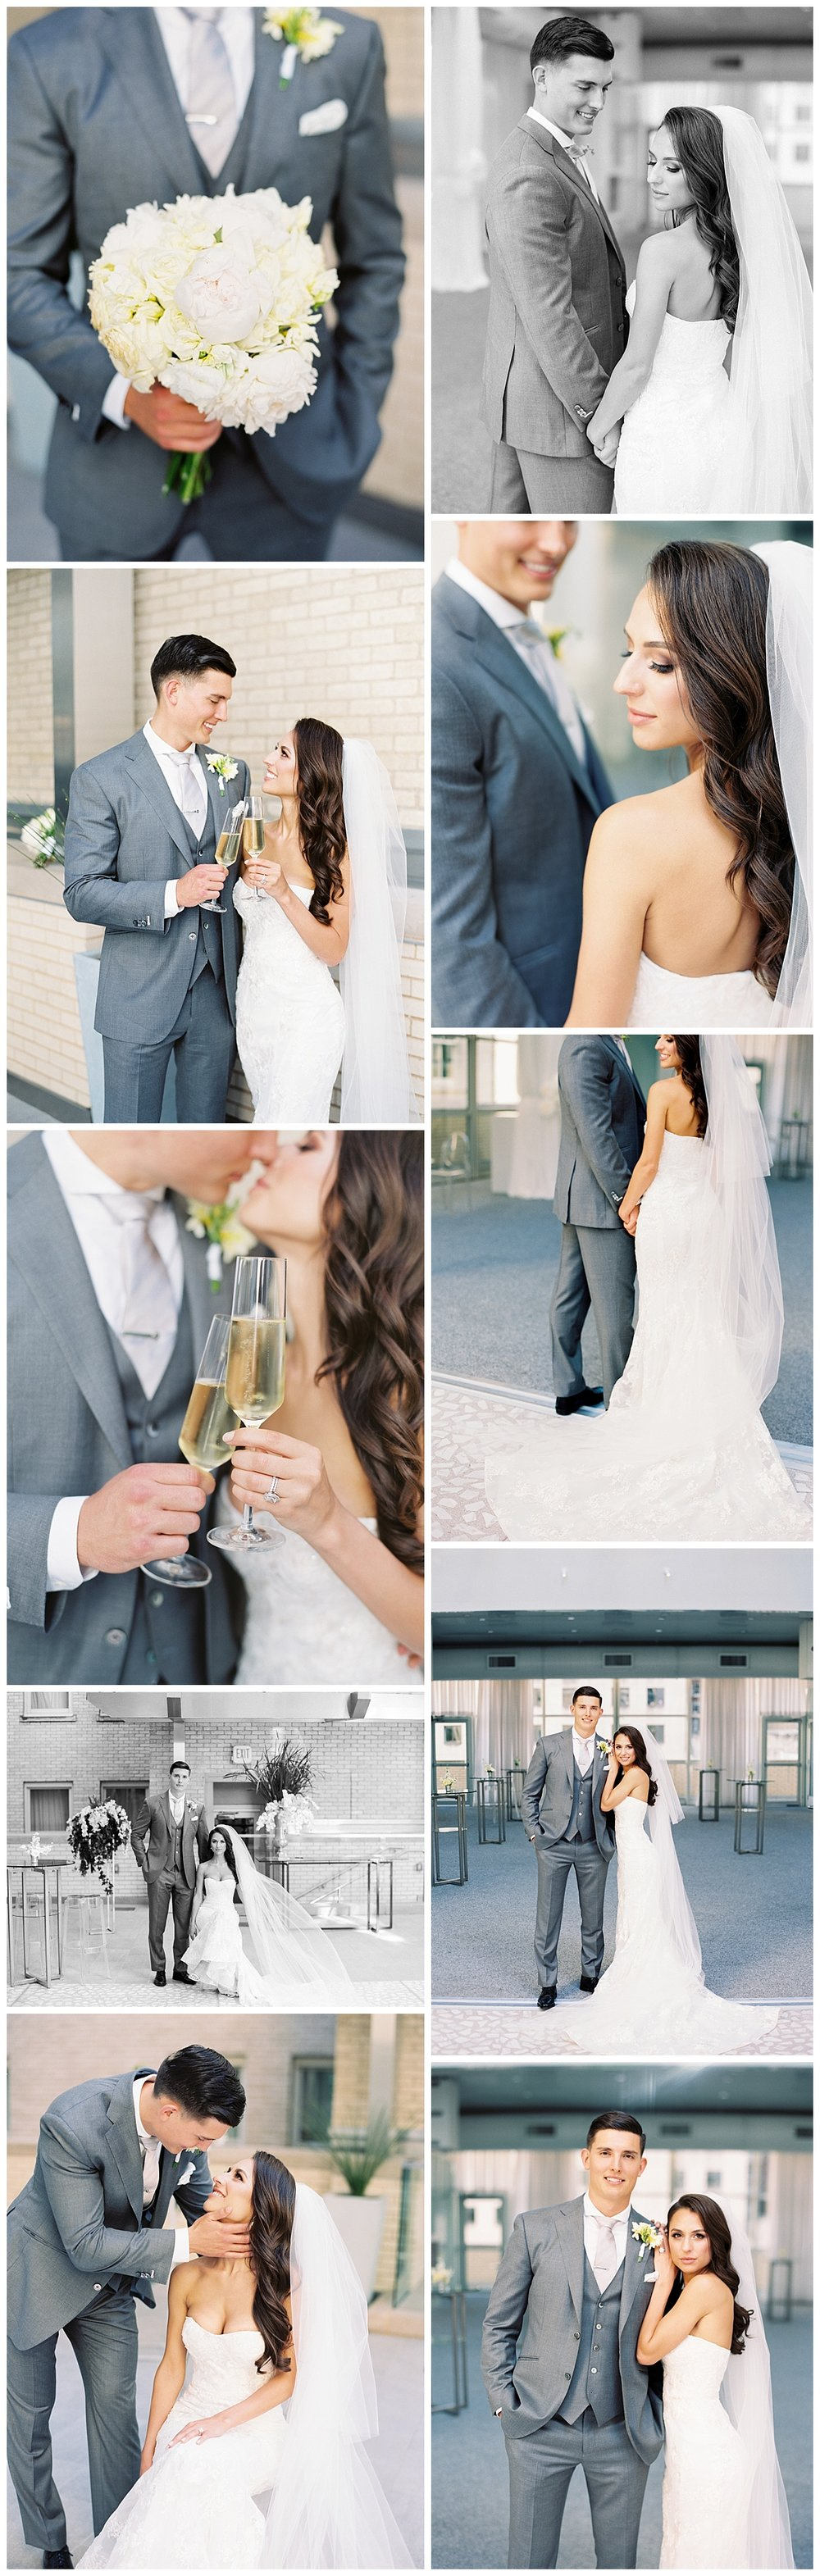 the-joule-dallas-wedding-ar-photography-7.jpg